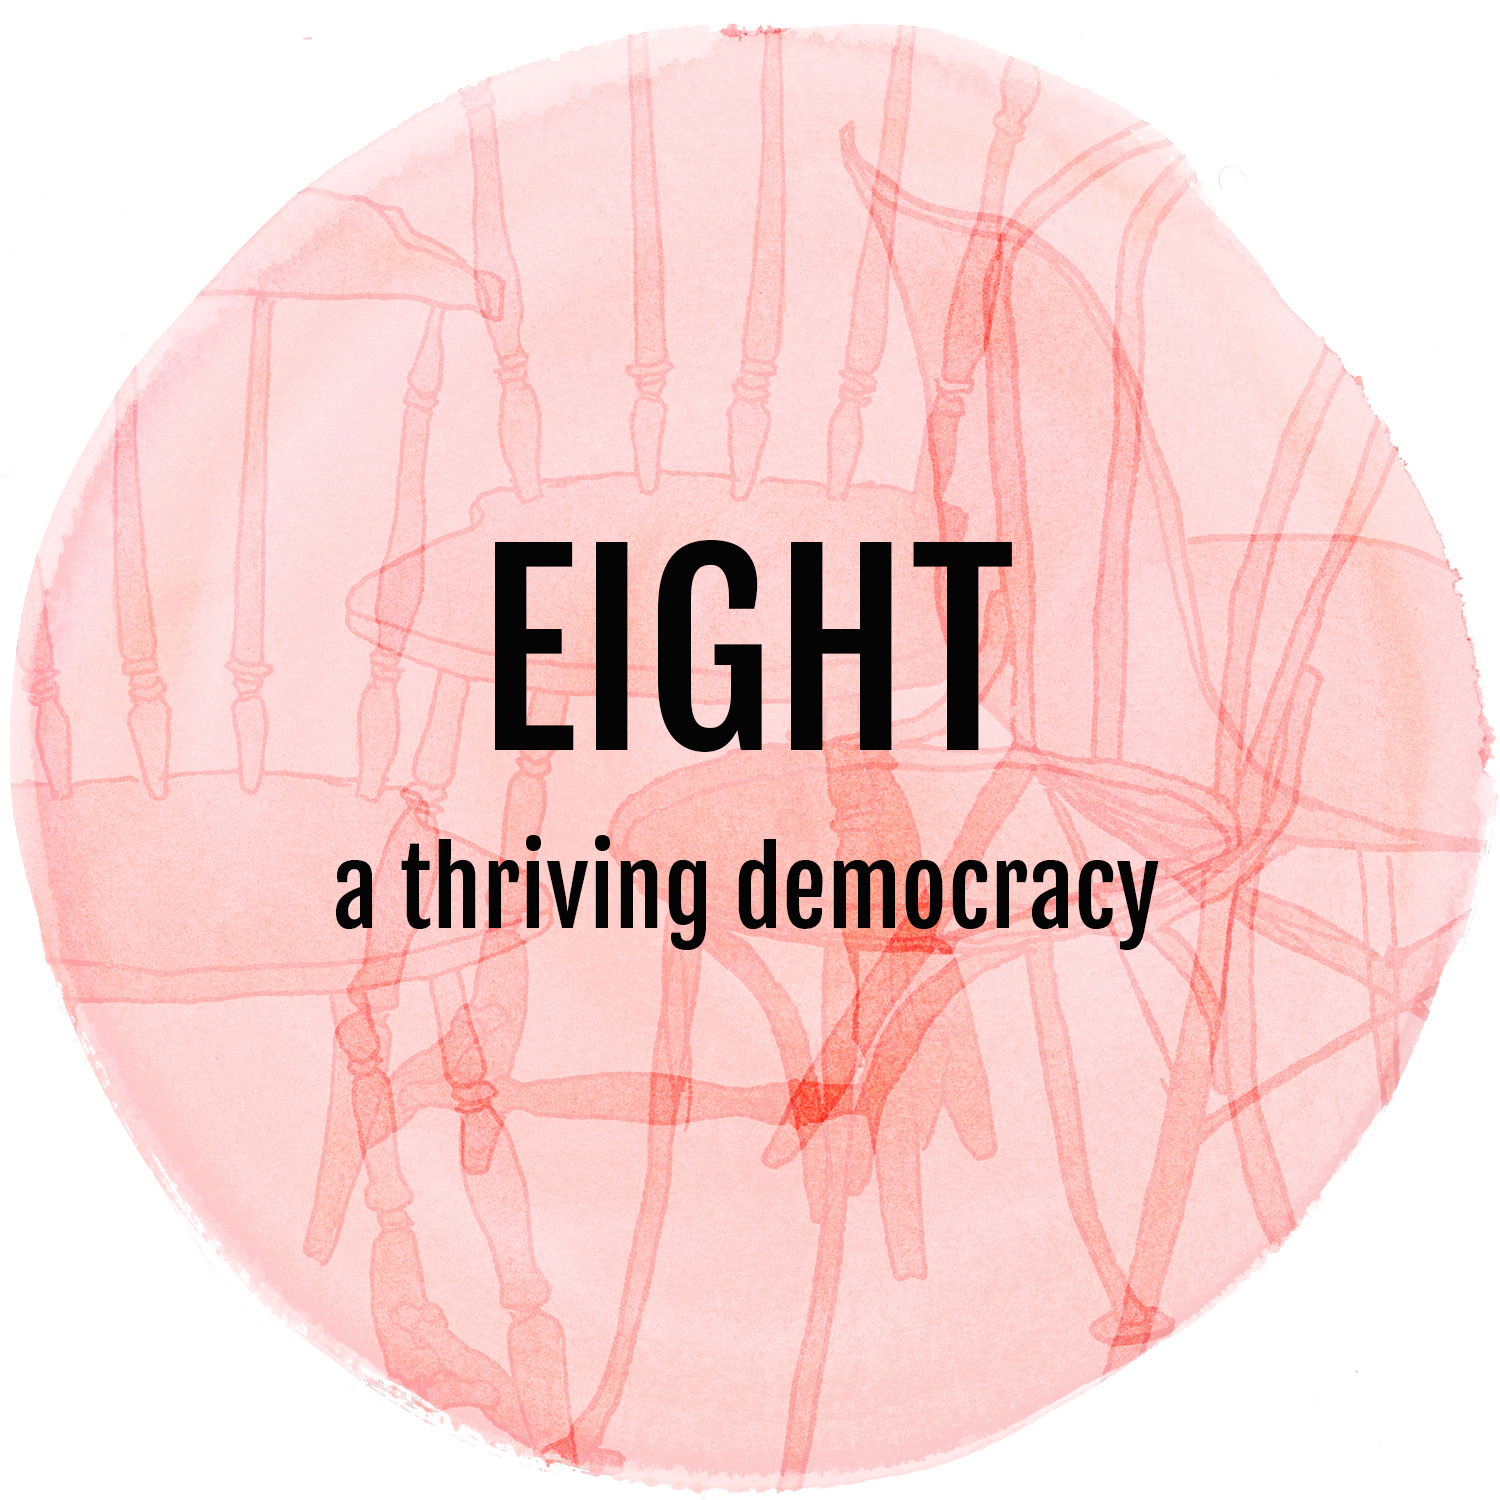 - Our government exists for the people. Because we value a strong democracy we are engaged and thoughtful citizens. We know how democracy works and we are confident to play our part in large and small ways.Click on the image to read more...